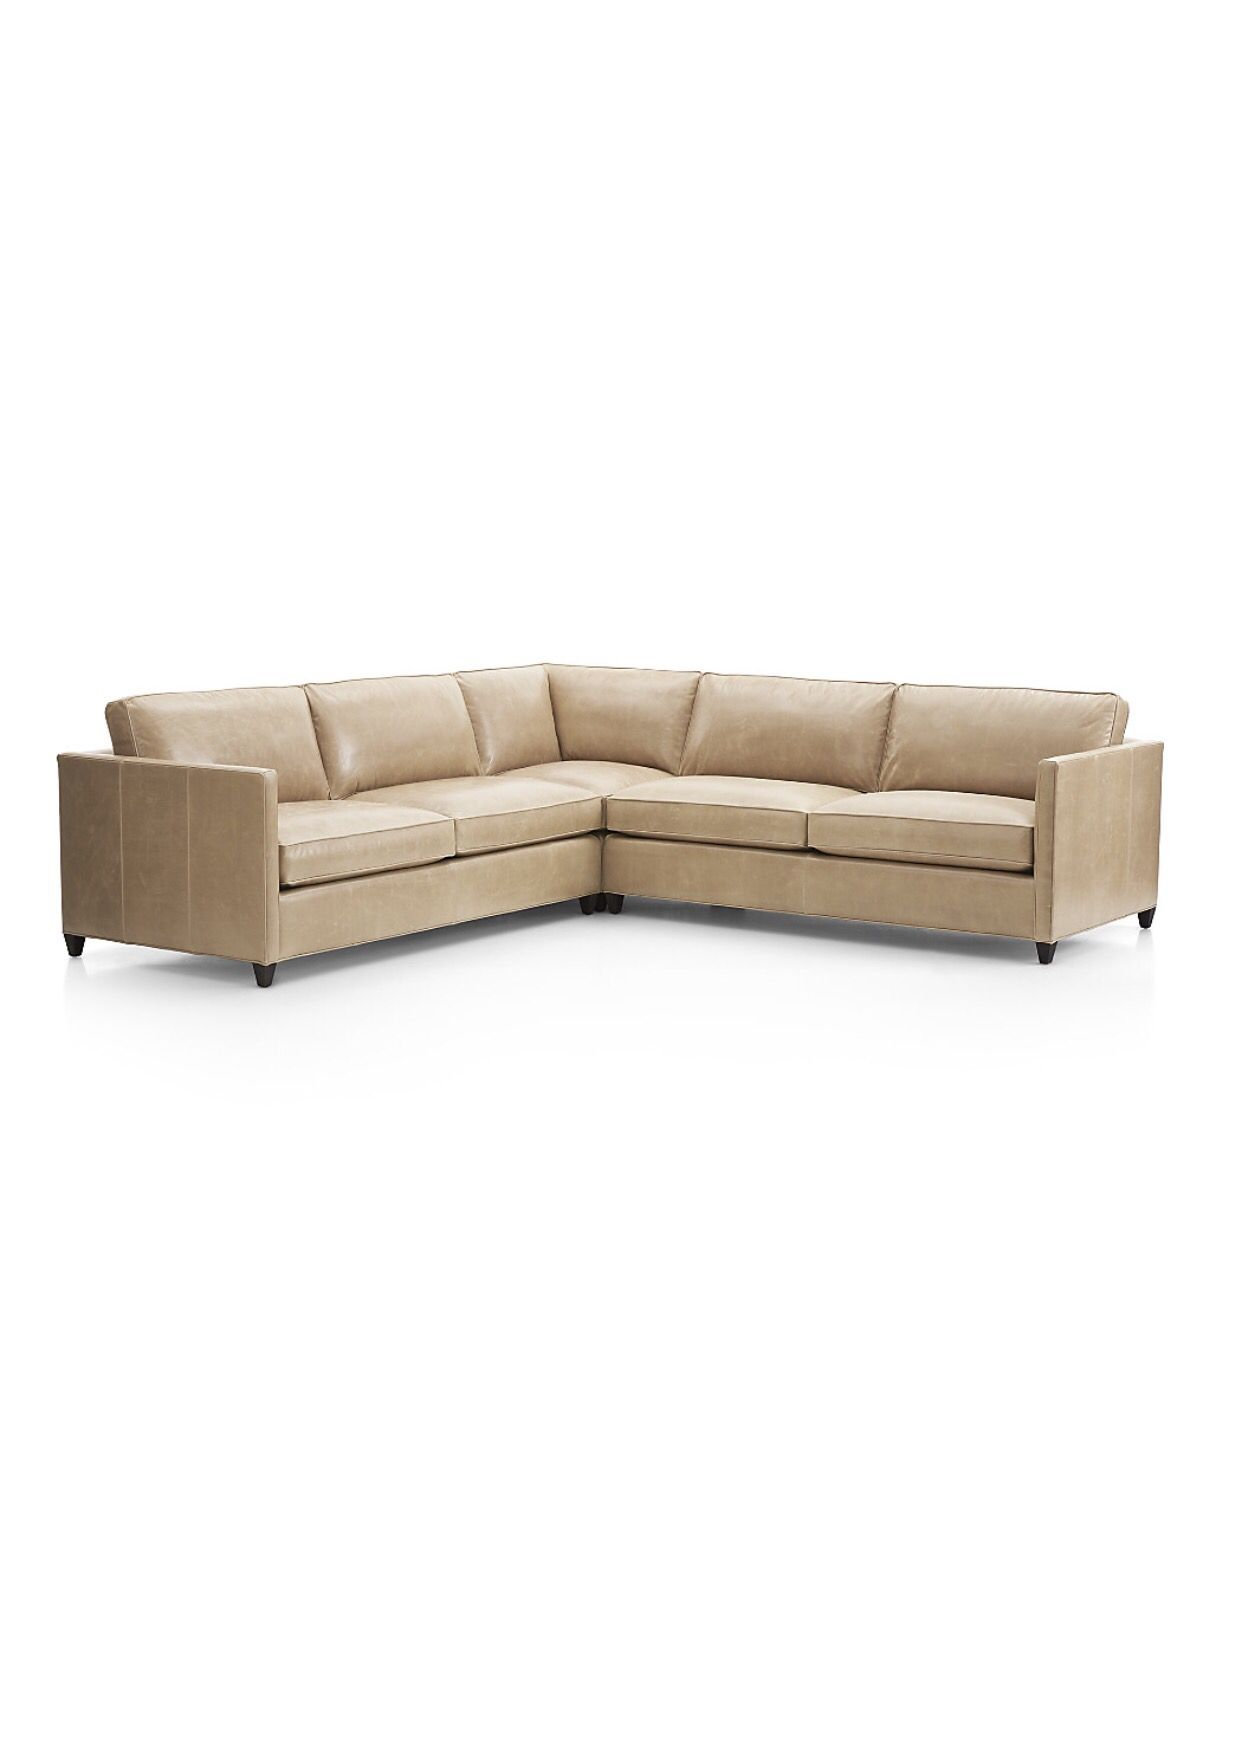 Dryden leather sofa in mushroom